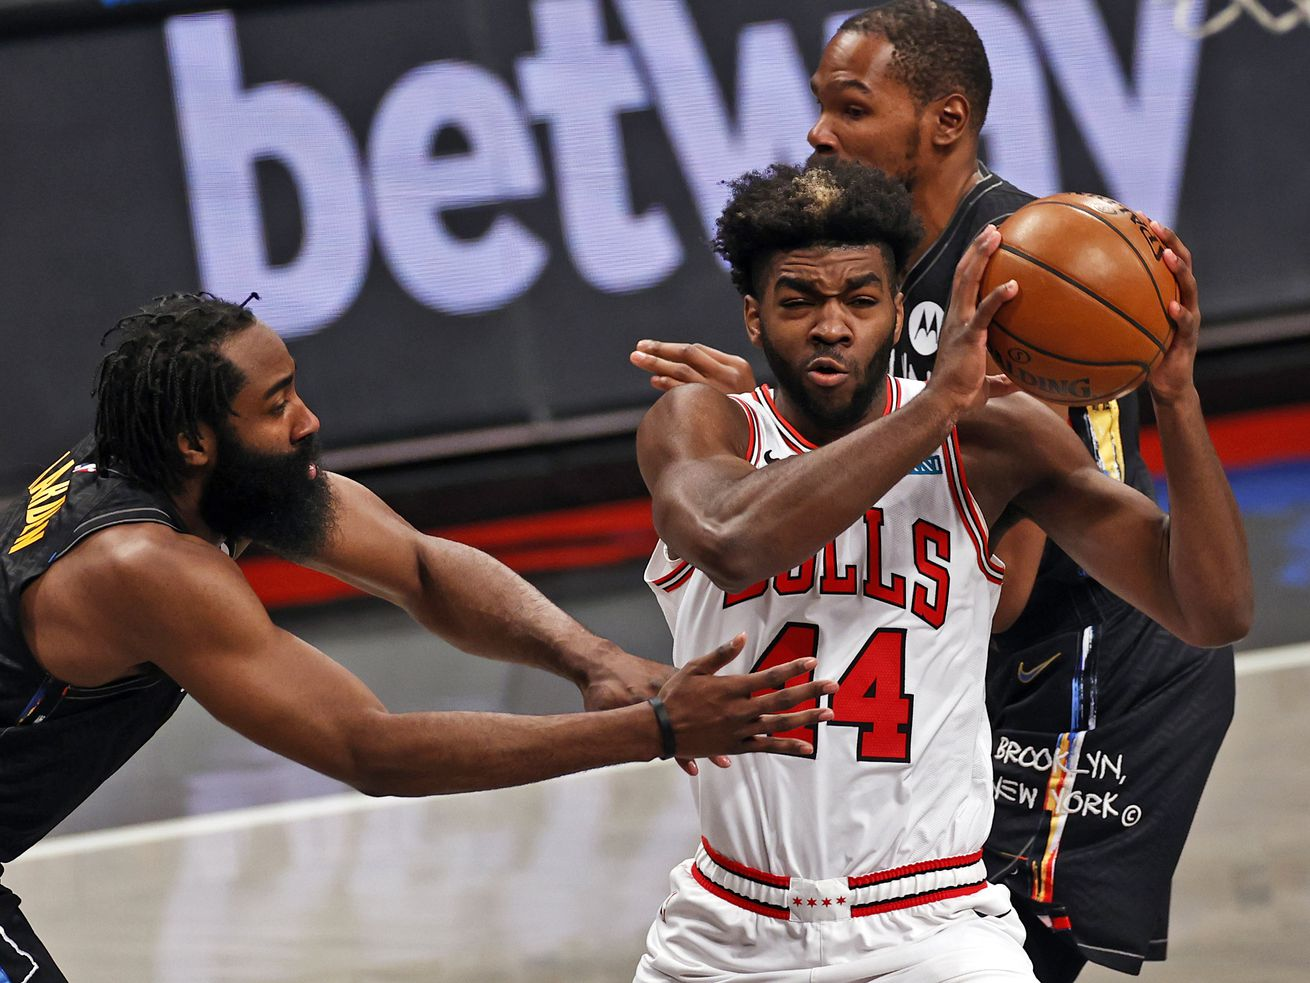 The Bulls will need Patrick Williams to show more confidence in himself next season.